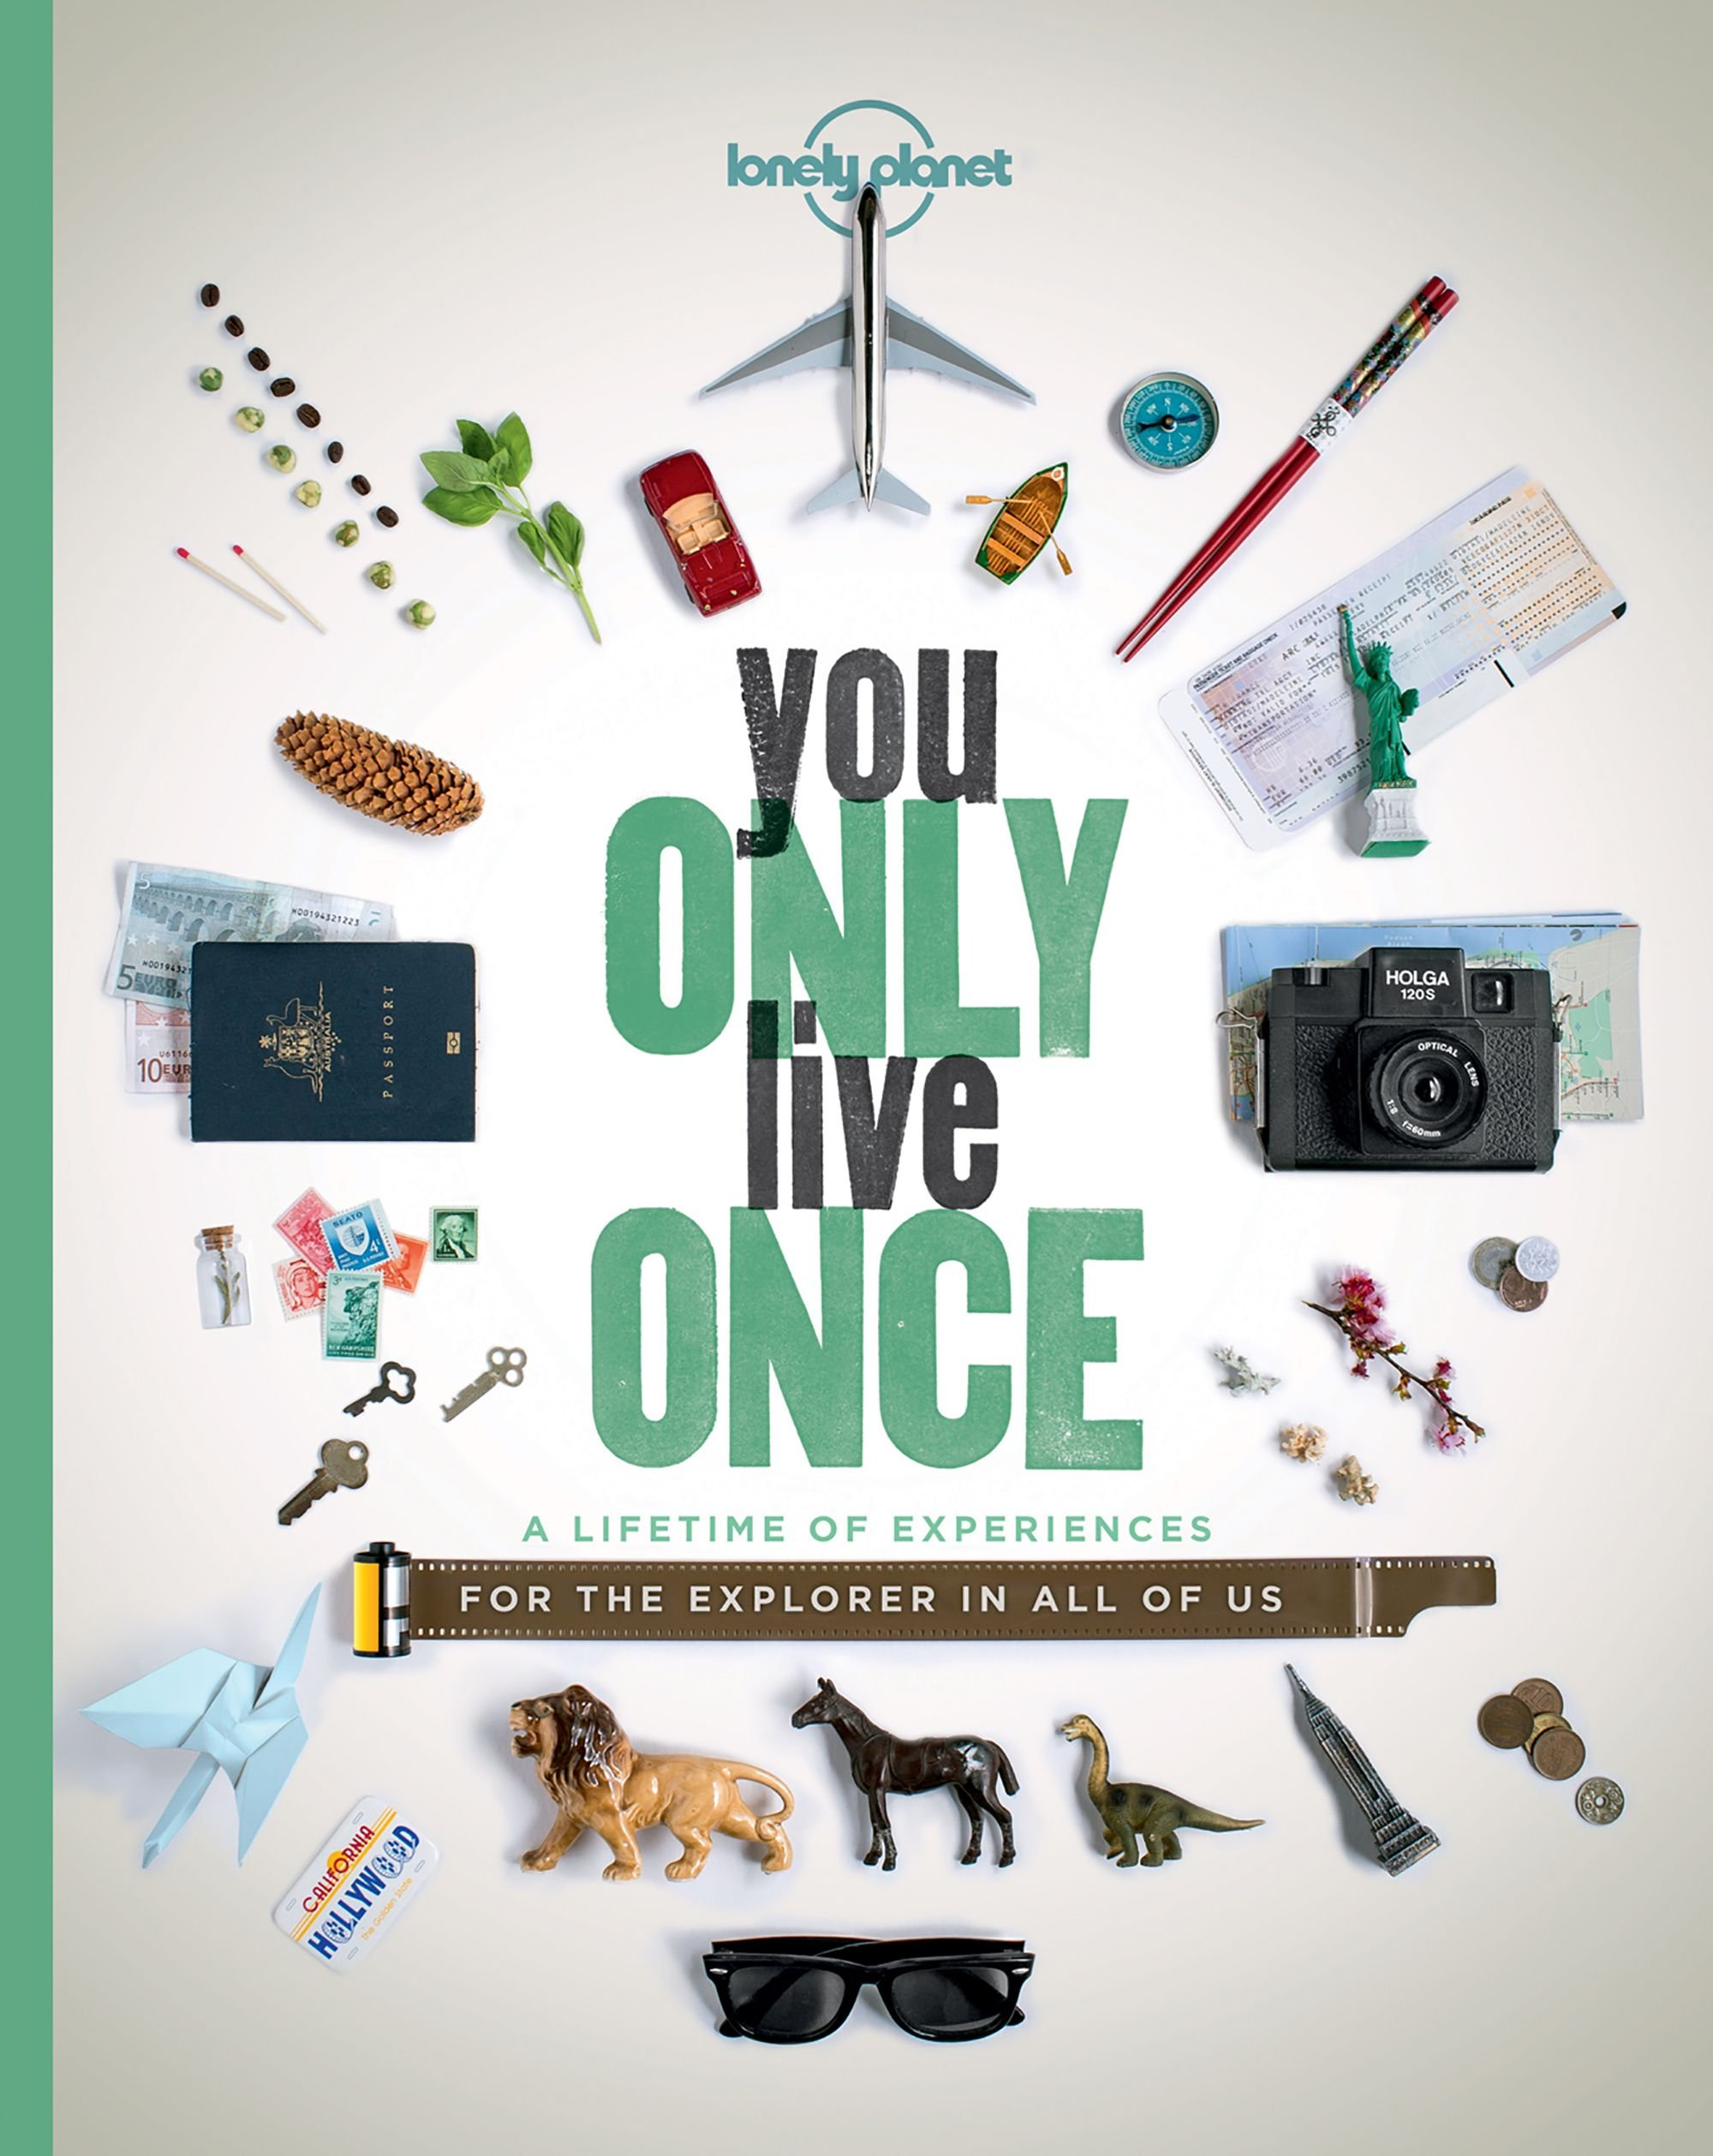 You only live once a lifetime of experiences for the explorer in you only live once a lifetime of experiences for the explorer in all of us lonely planet lonely planet 9781760342593 amazon books fandeluxe Image collections